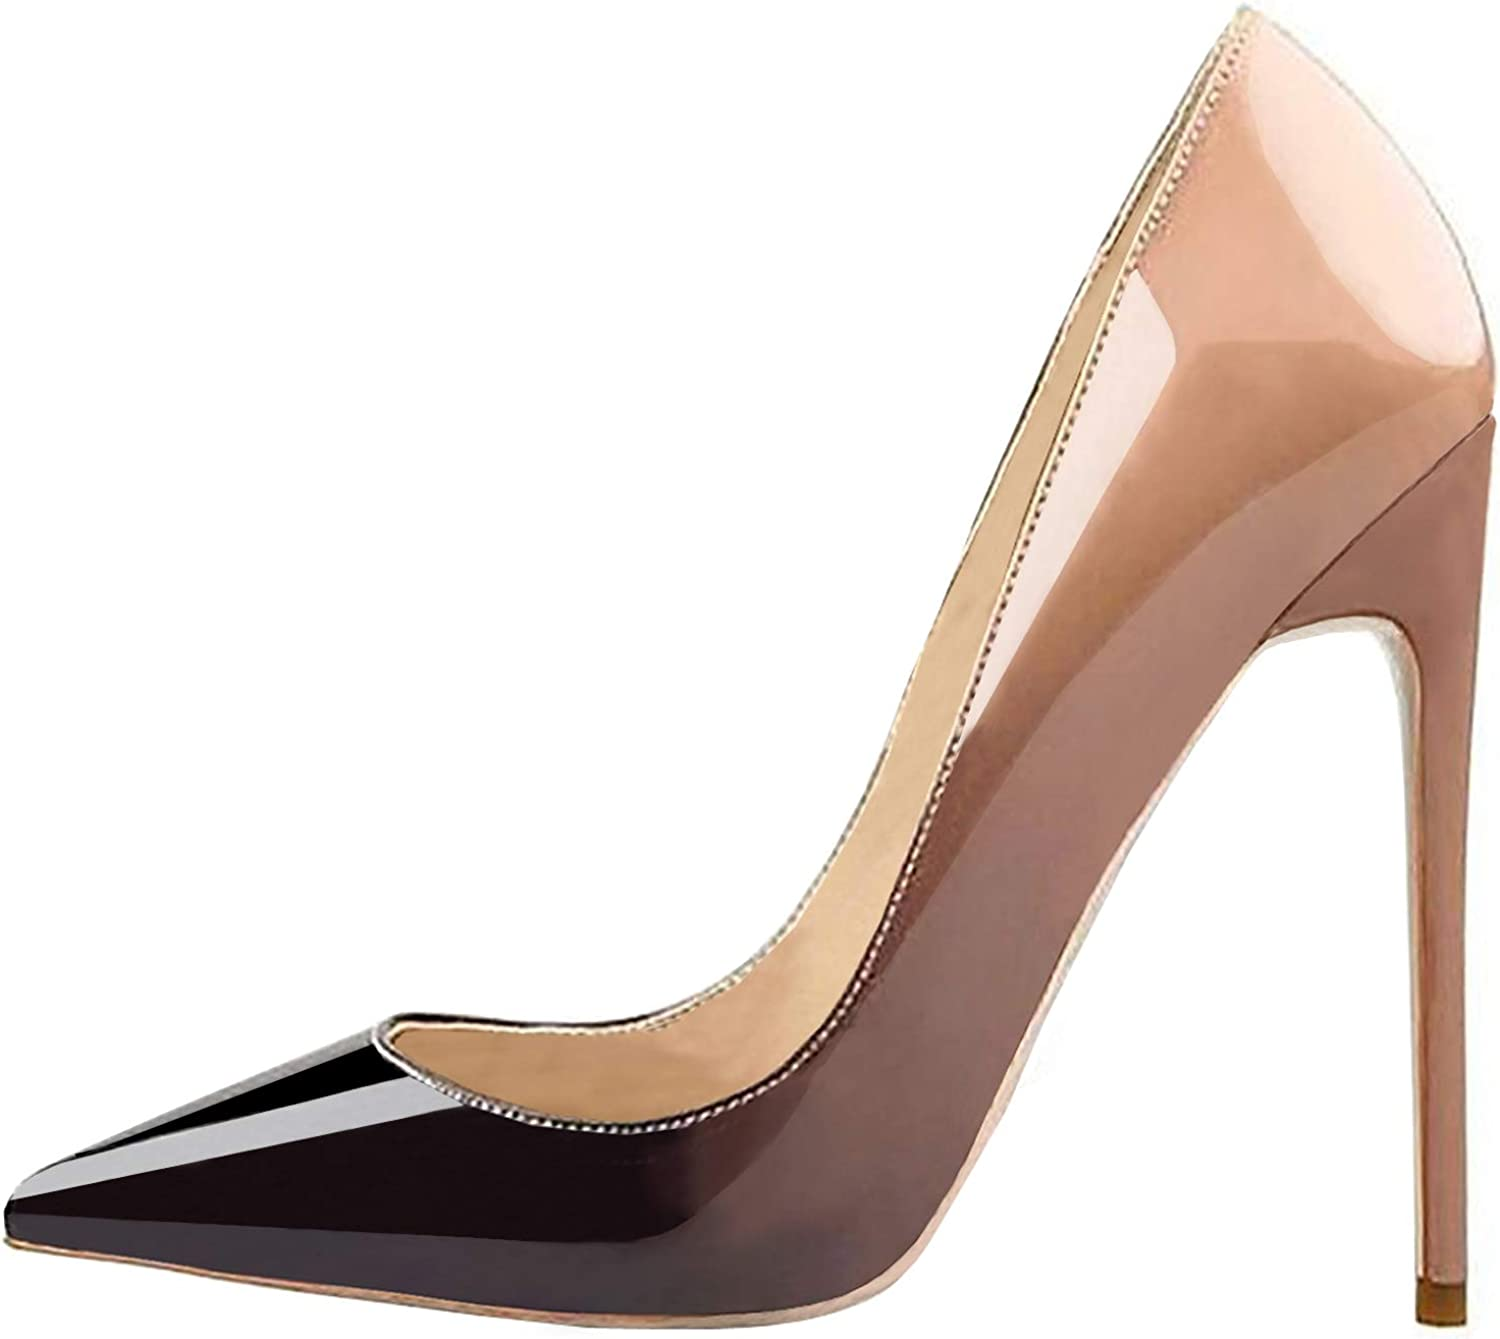 Lovirs Womens Nude-Black Pointed Toe High Heel Slip On Stiletto Pumps Wedding Party Basic shoes 10 M US